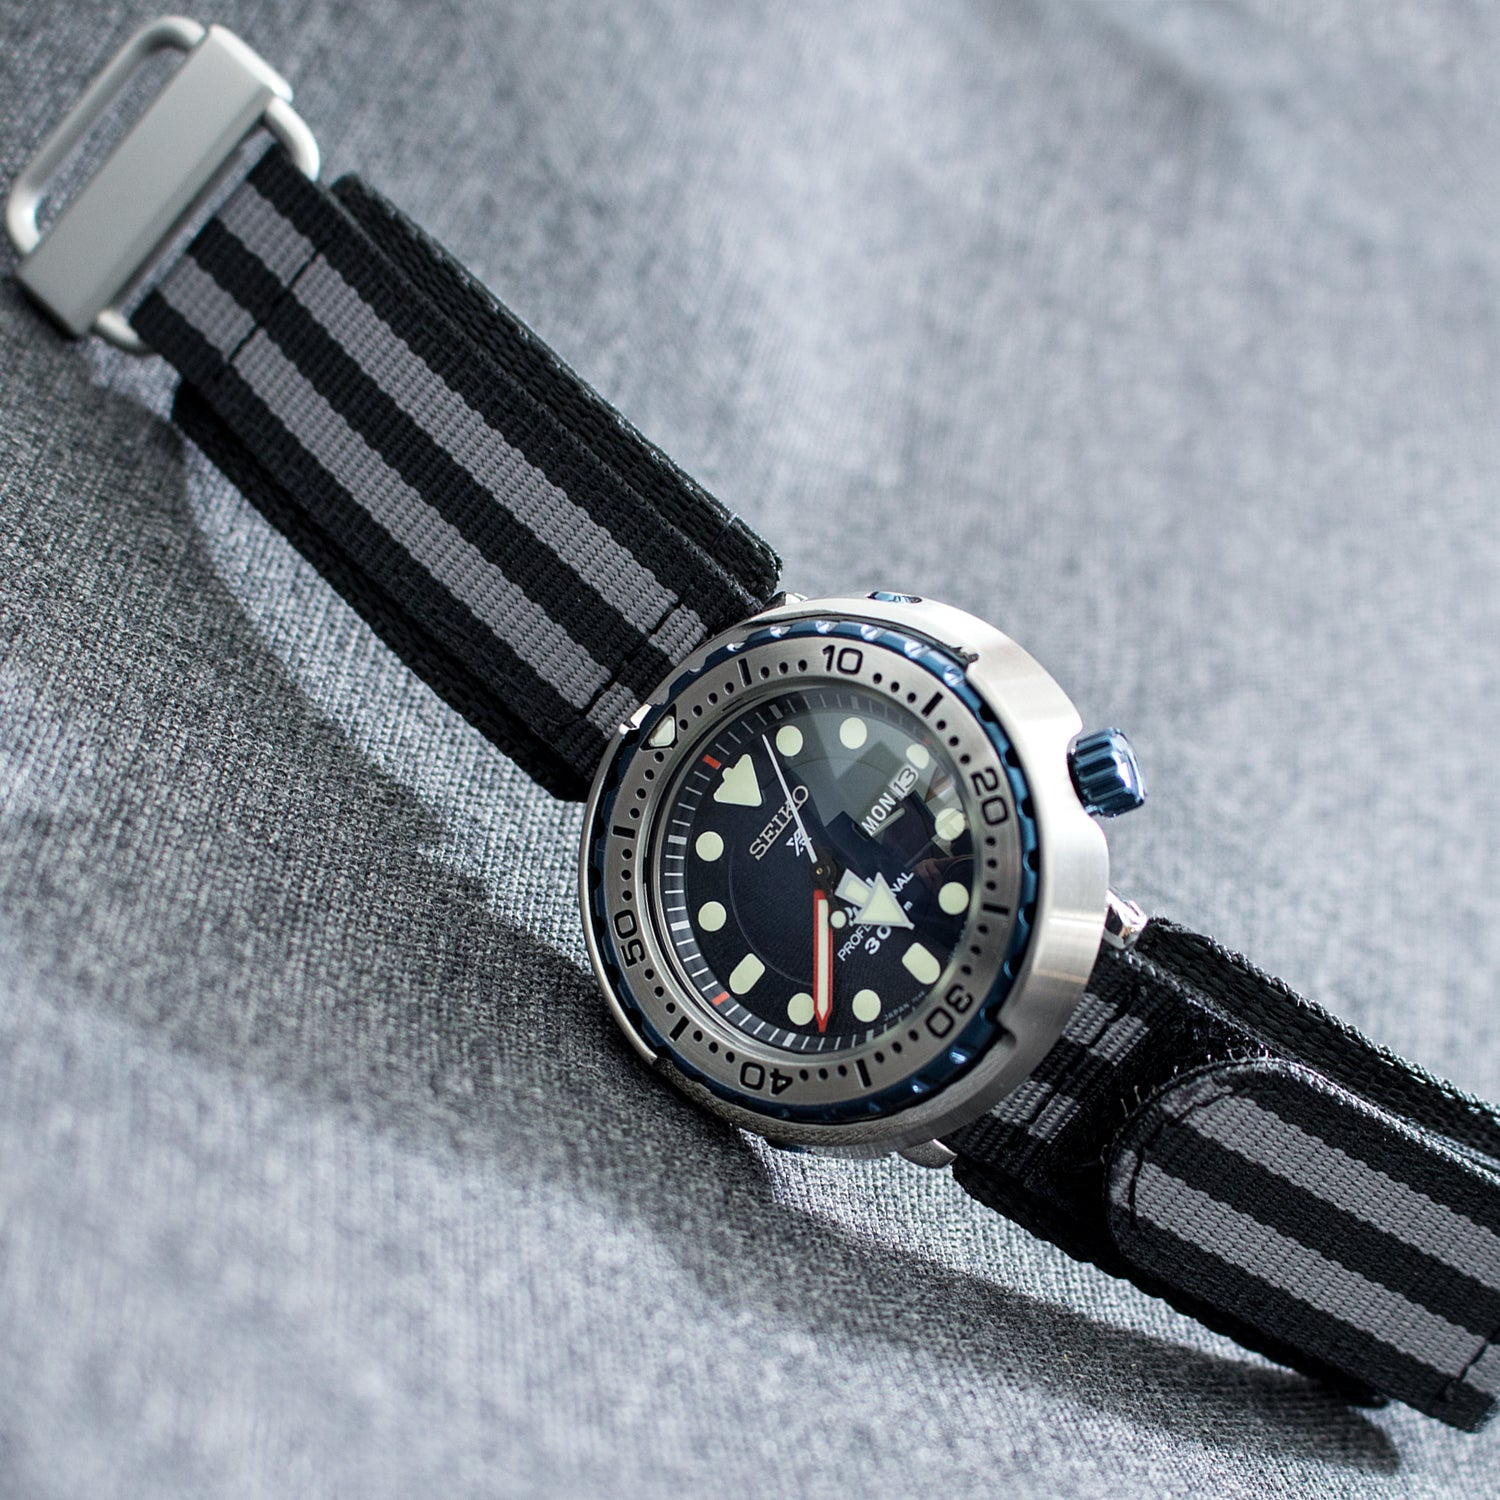 Seiko PADI Marinemaster Tuna 300M Diver Quartz SBBN039 paired with Velcro Nylon watch bands